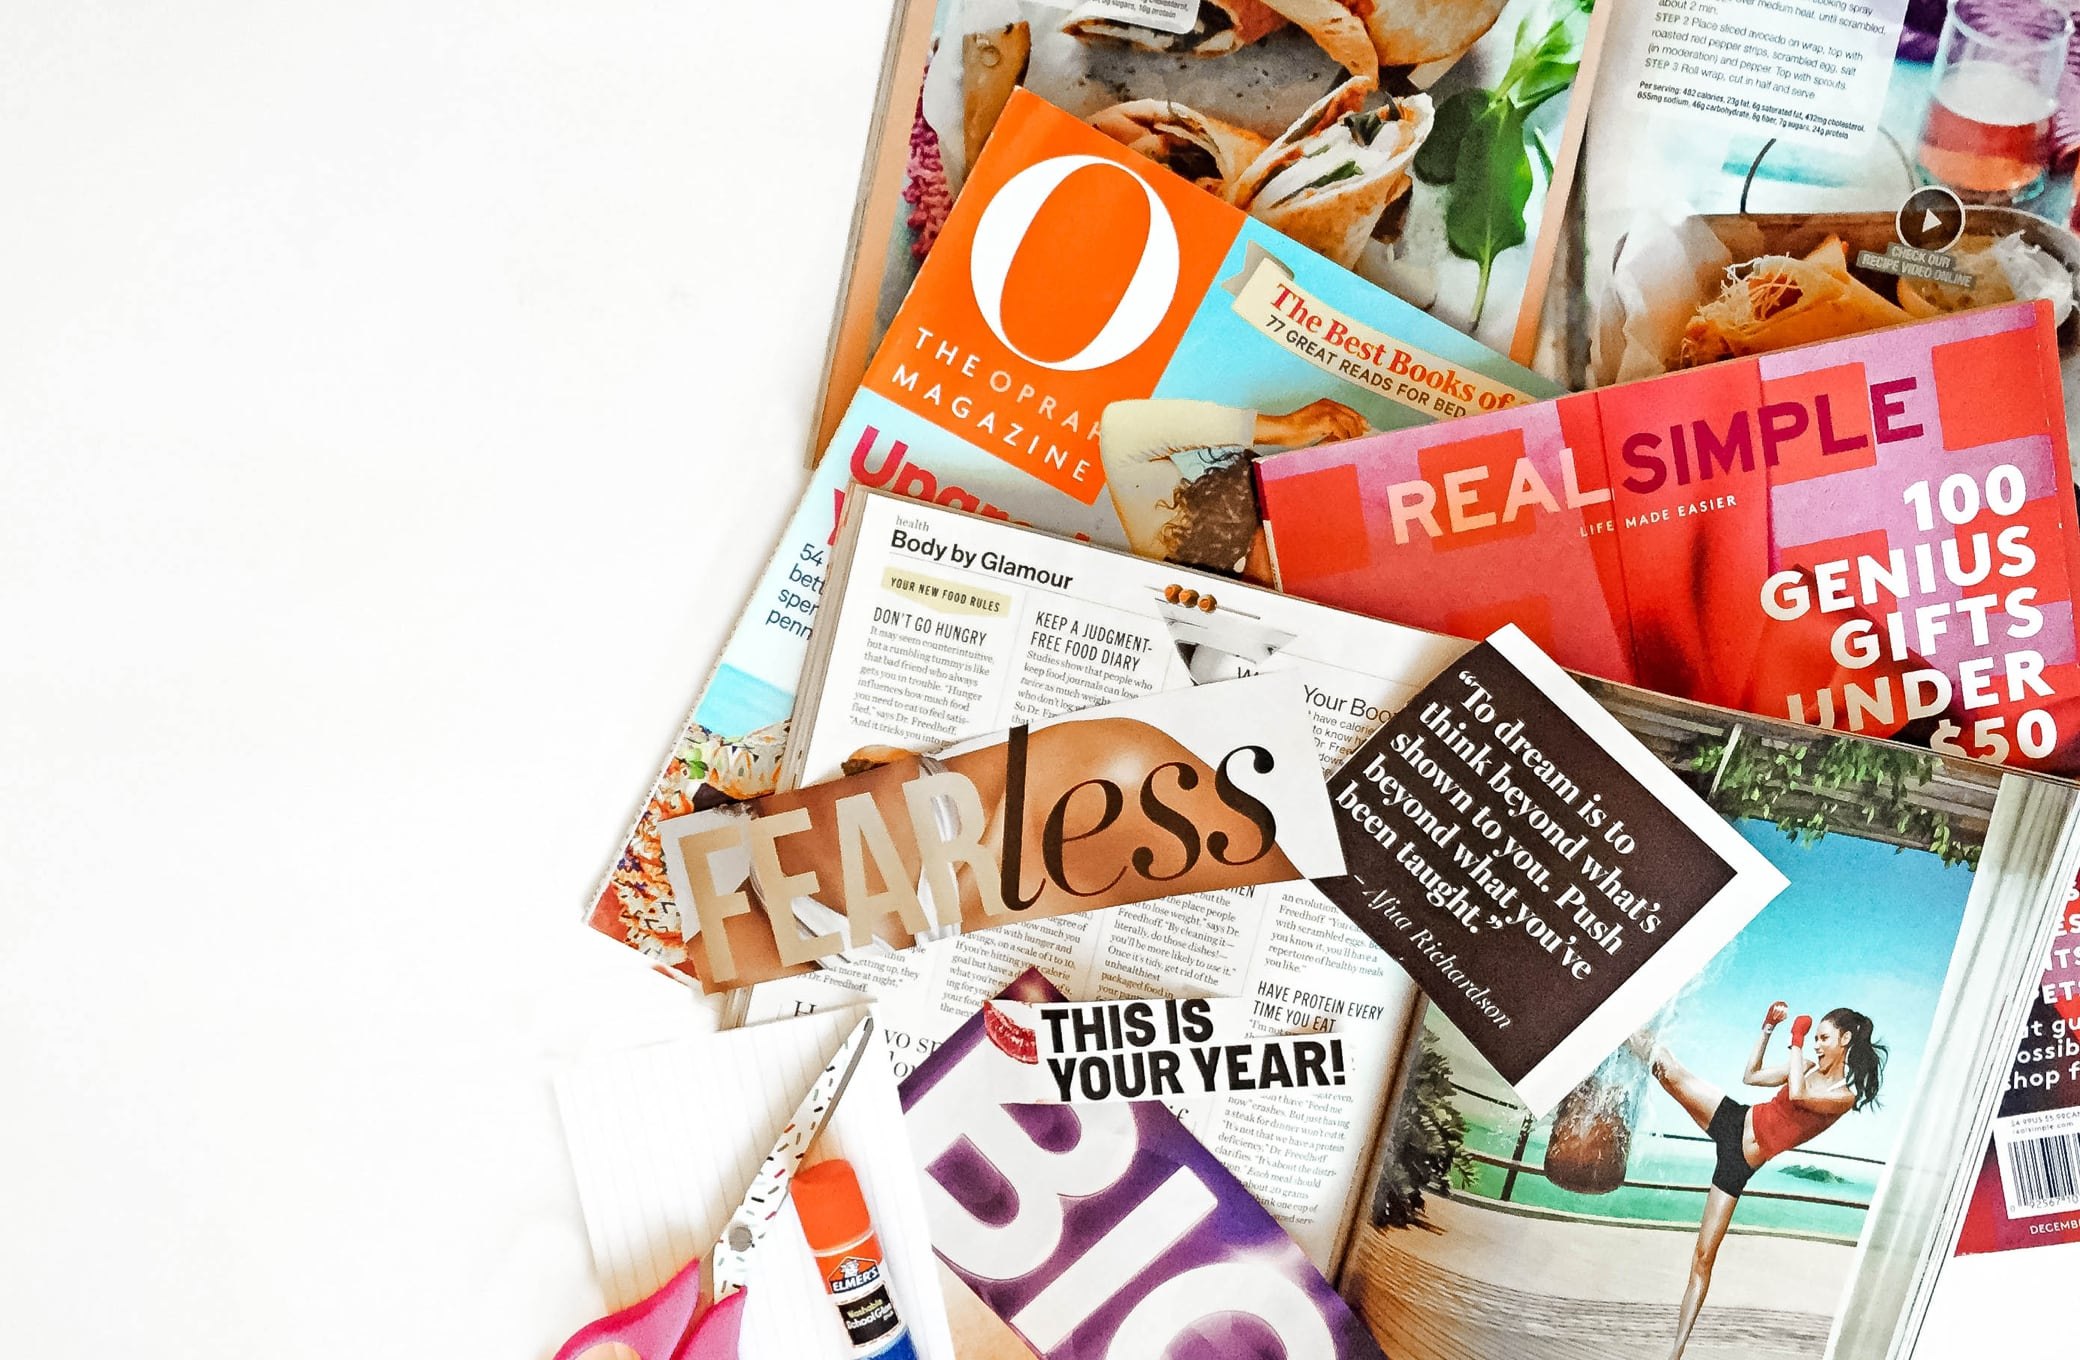 Fabulous 10 Tips For Hosting An Awesome Vision Board Party – Her Life Inspired ML18